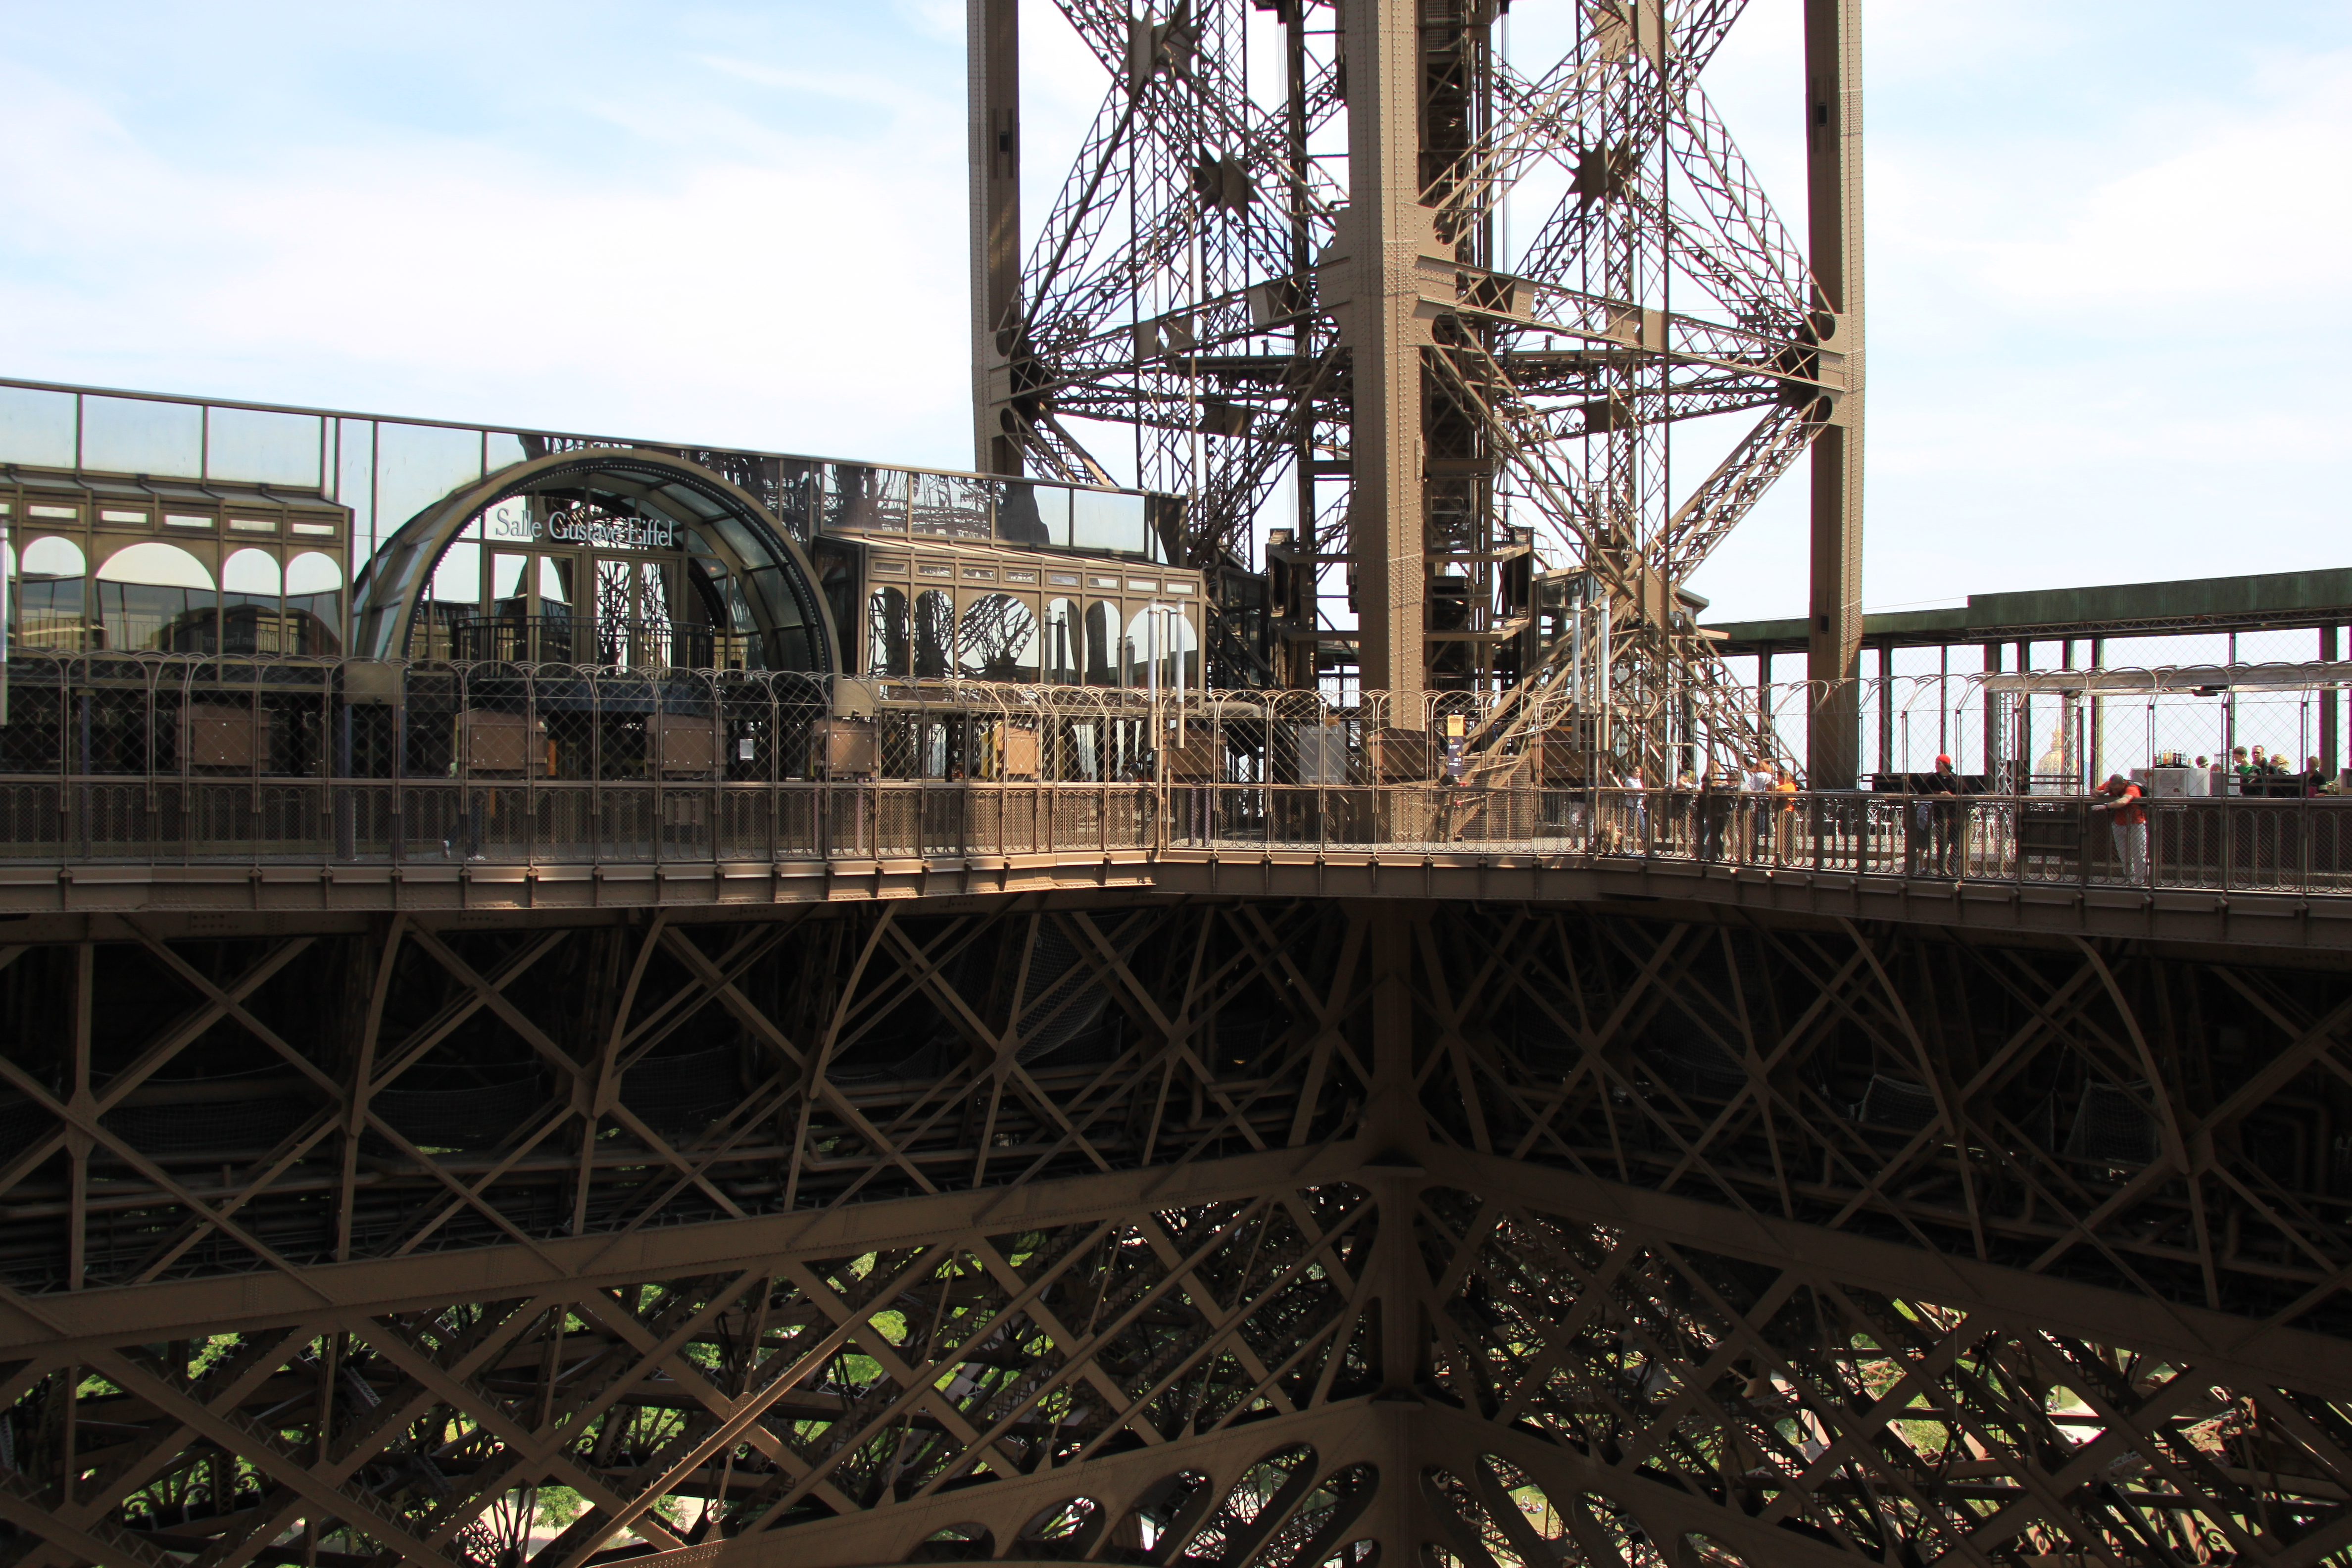 File first floor of the eiffel tower 2 paris april for Floors of the eiffel tower